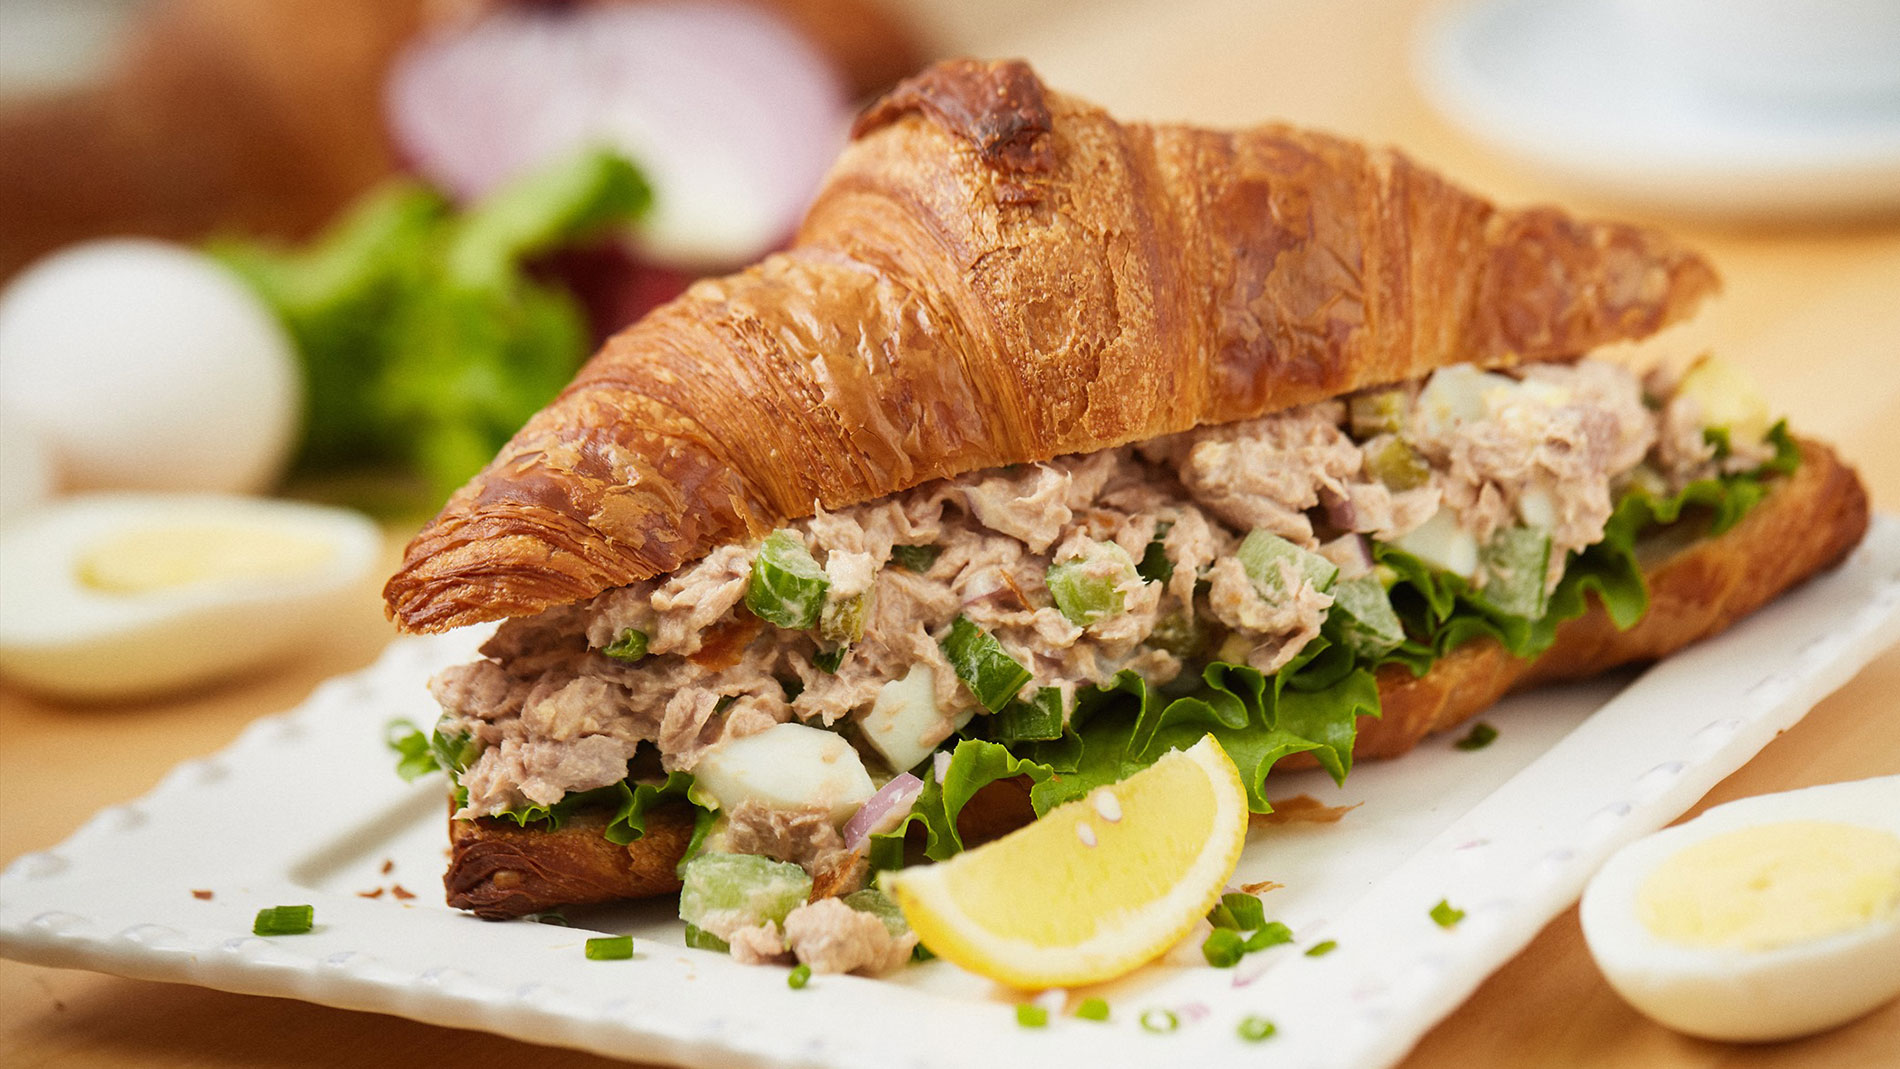 tuna fish salad sandwich from nathaniel reid bakery